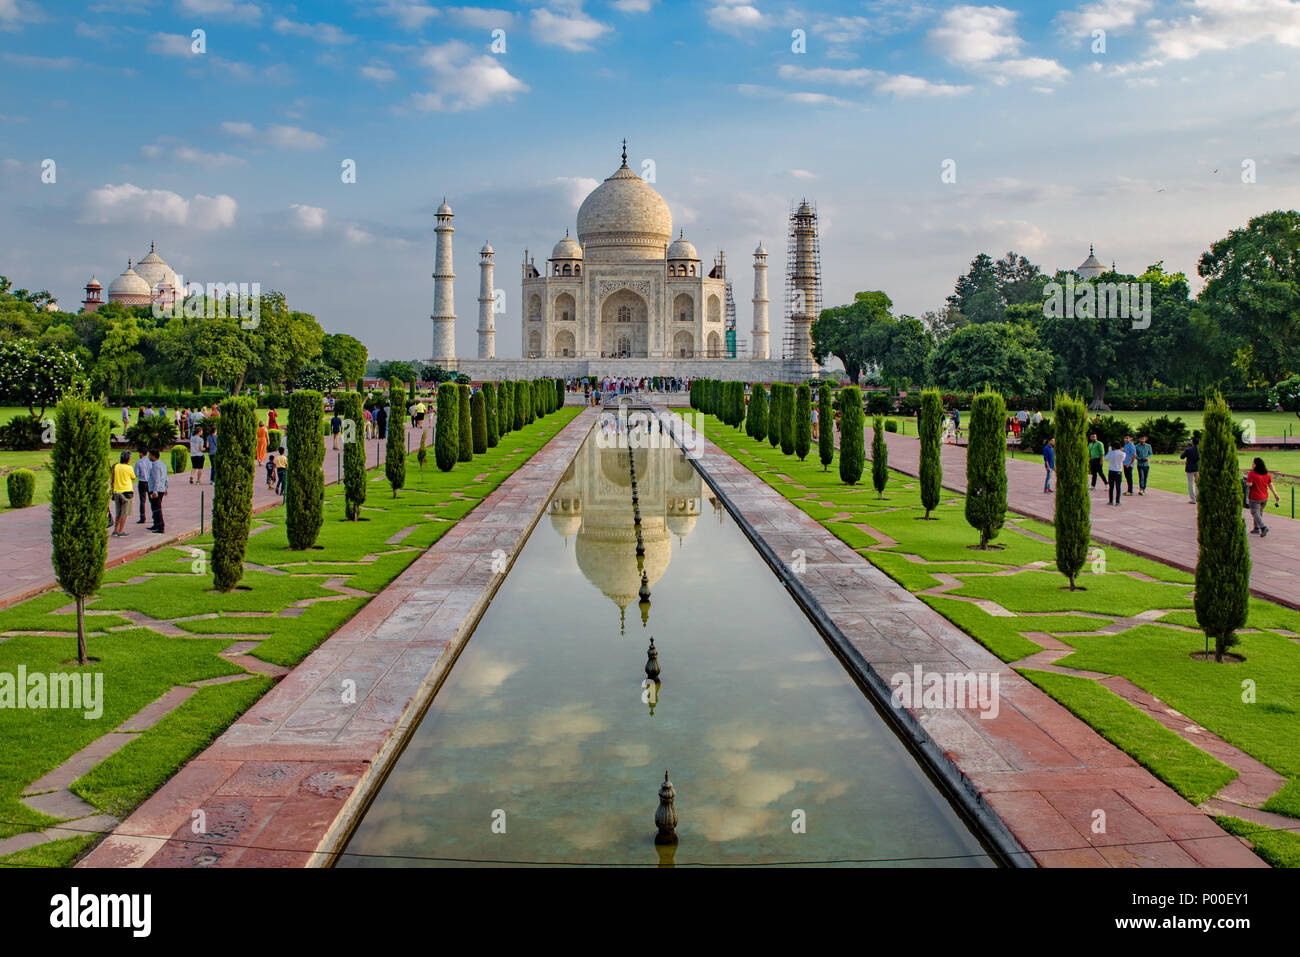 Taj Mahal with reflection on water, Agra, India - Stock Image